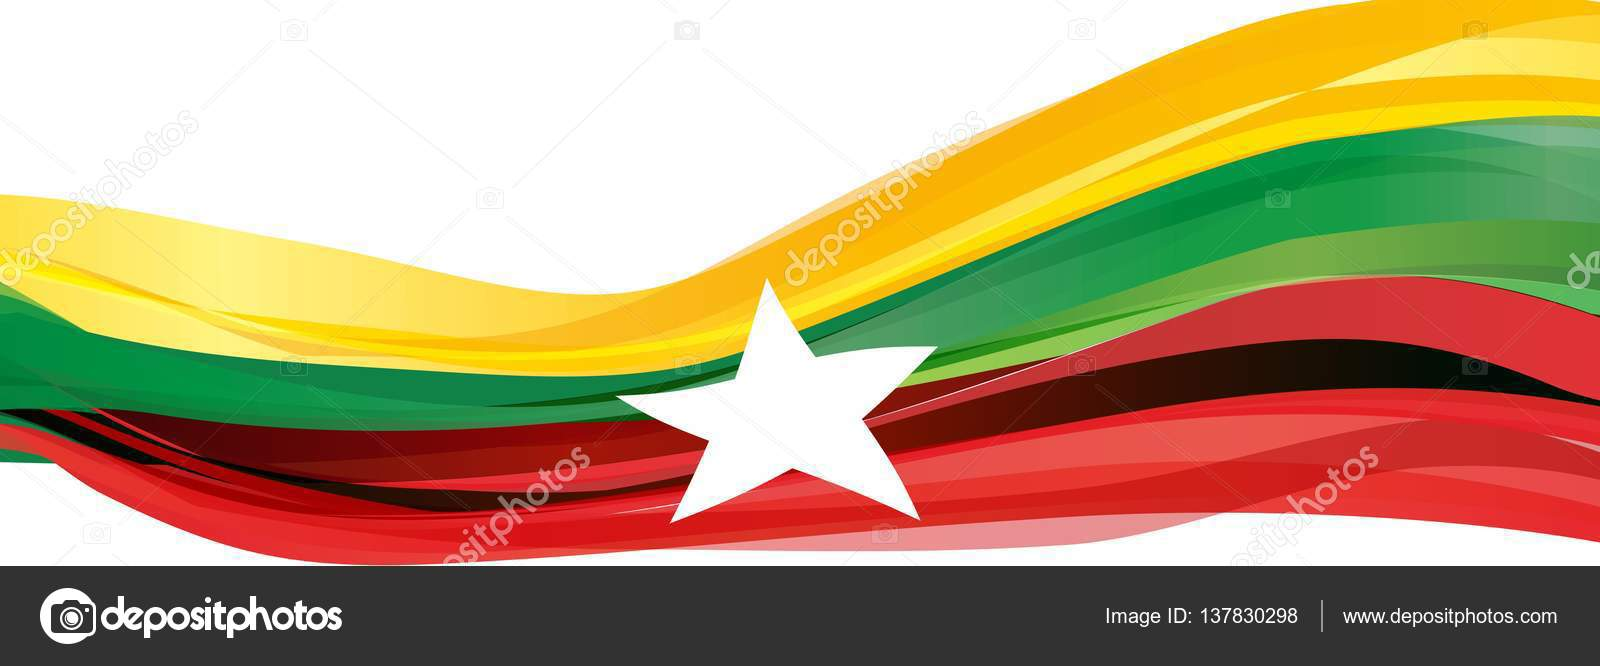 Yellow Green Red With A White Five Pointed Star Flag Of The Republic